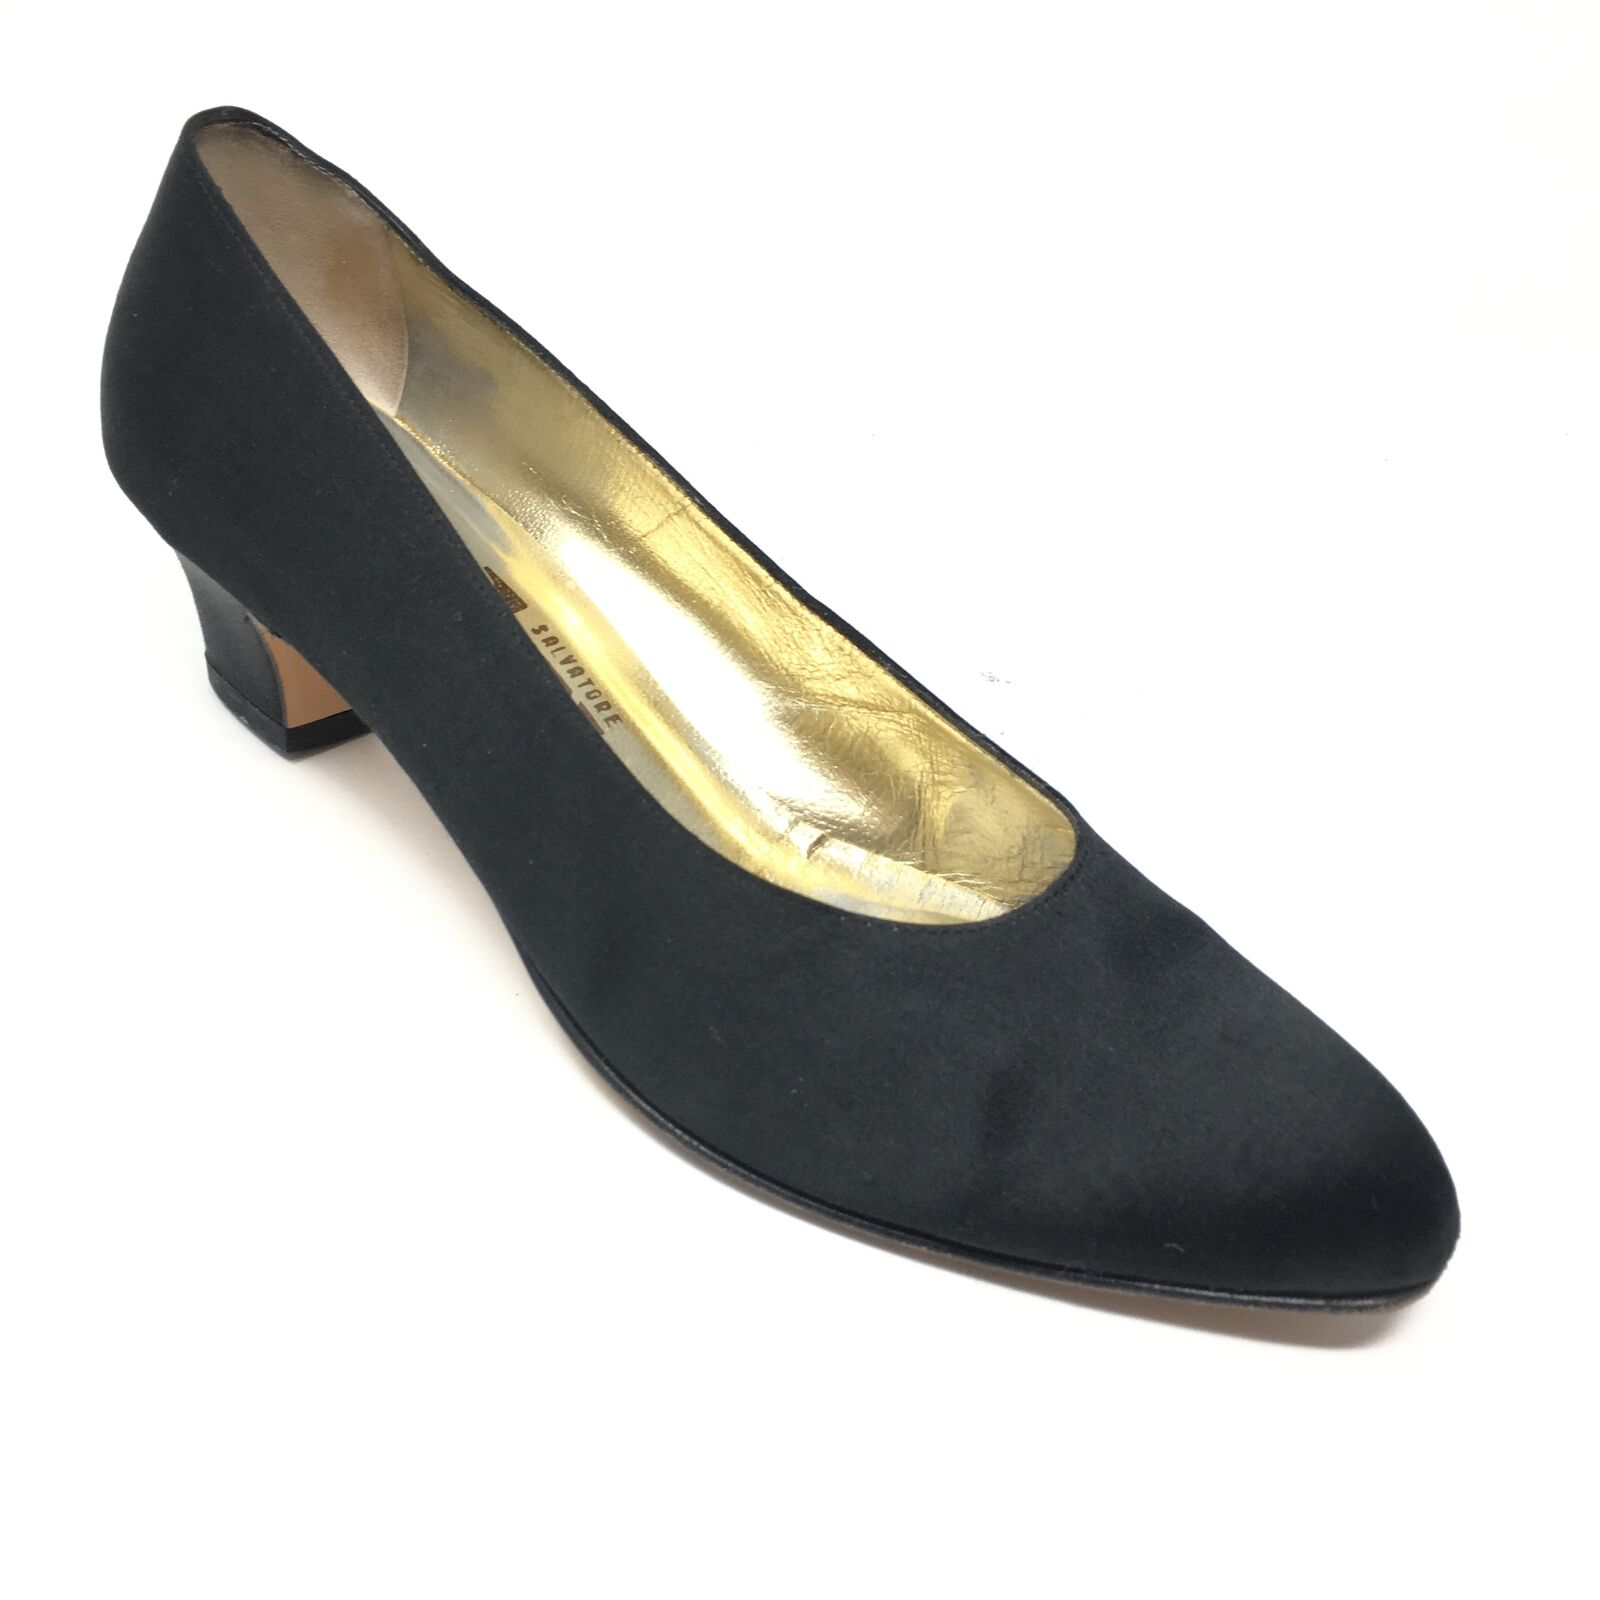 Women's Salvatore Ferragamo Pump Heels shoes Size 8AA Black Fabric Dress V15